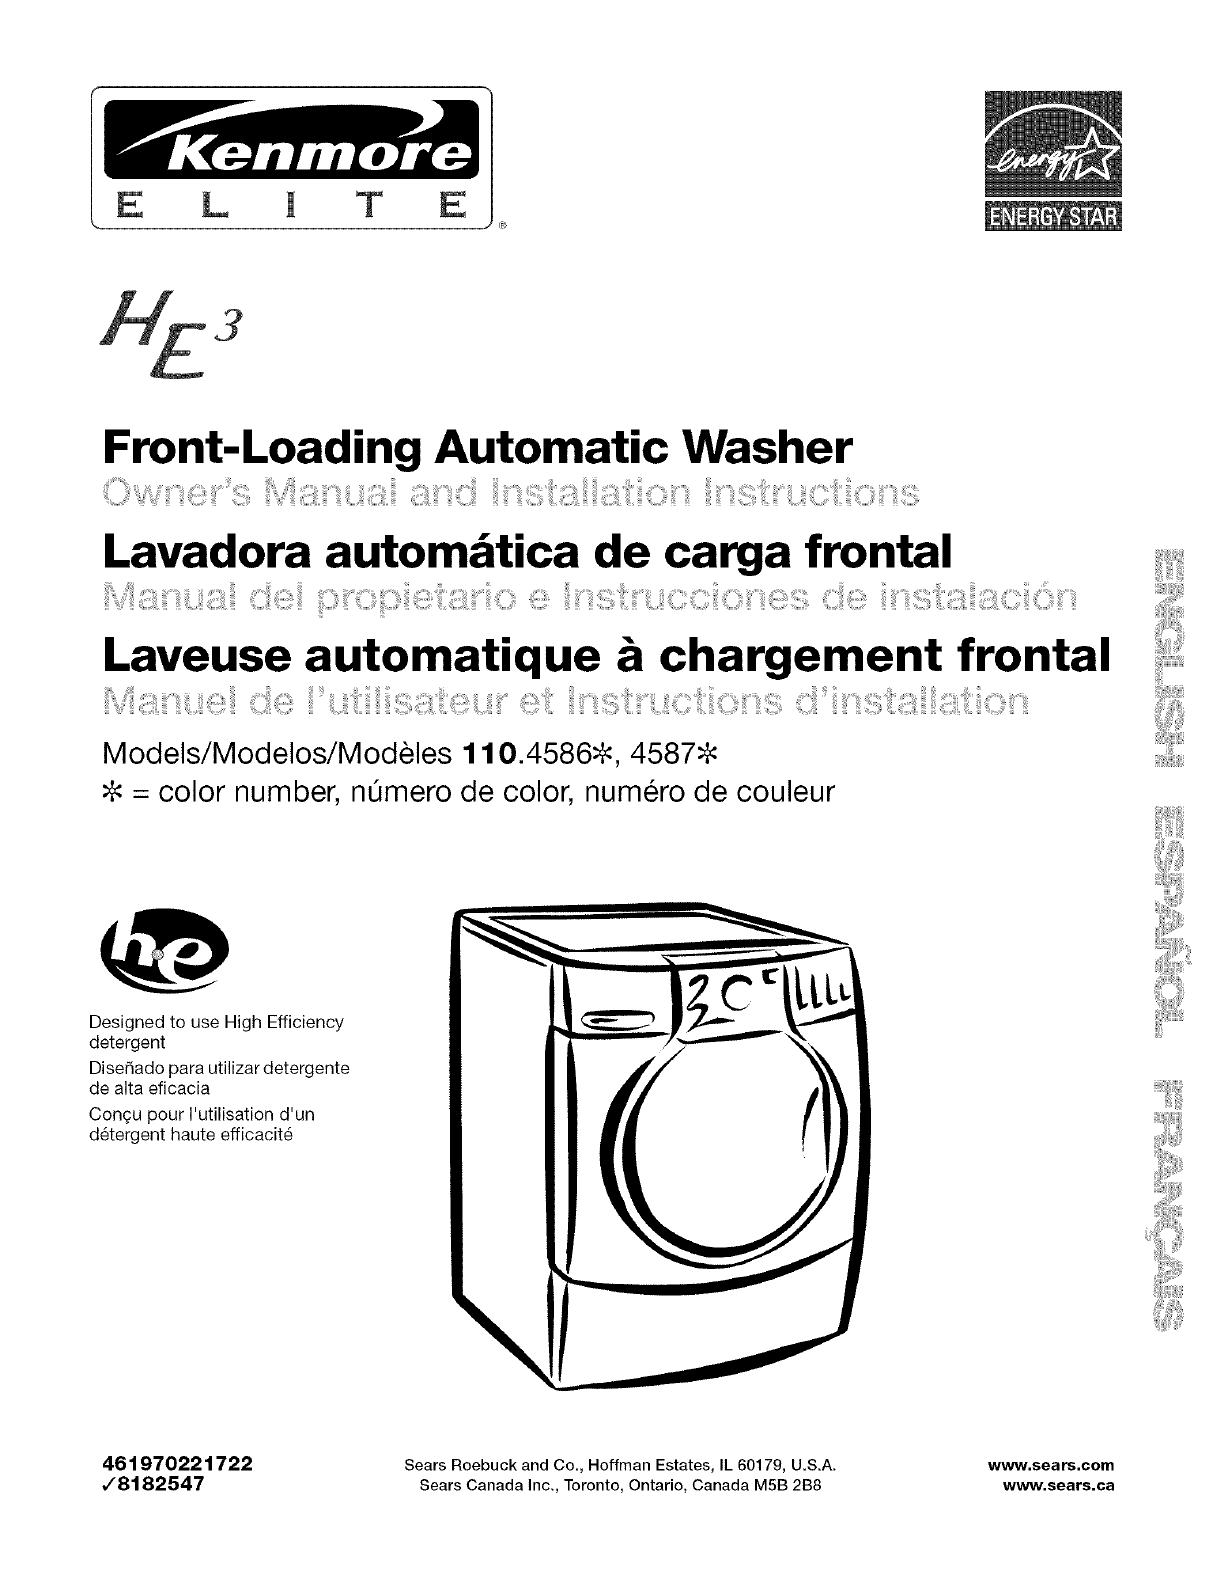 Front-Loading Automatic Washer